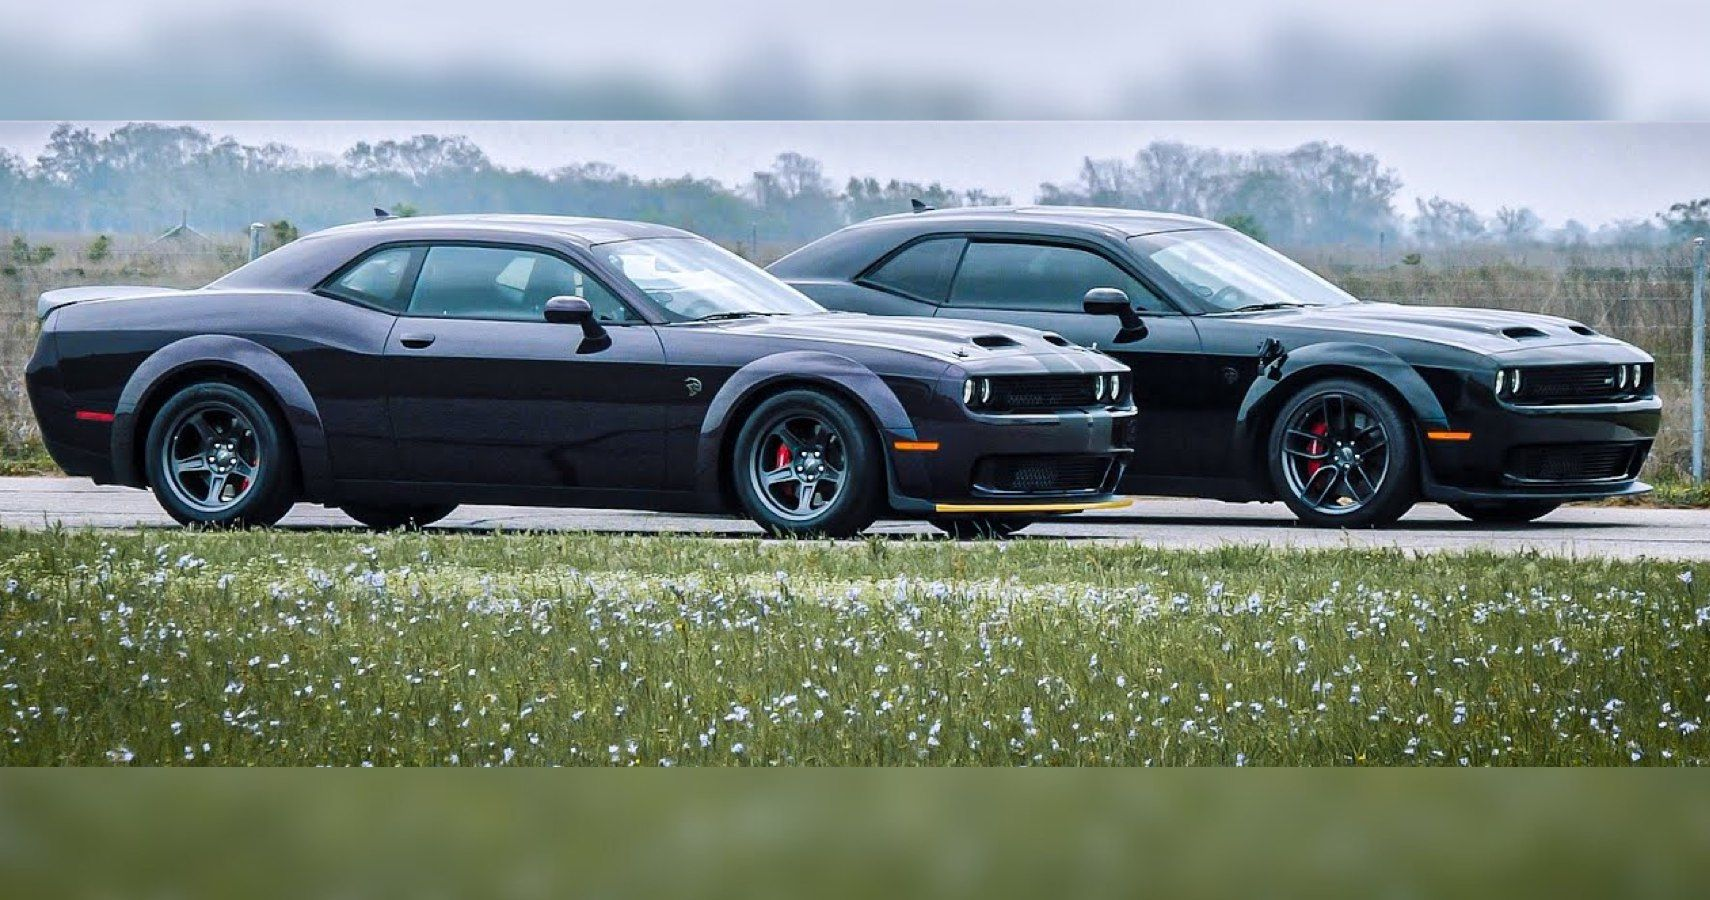 2021 Hellcat Super Stock Looks Tired Compared To Hennessey's 1,000-HP Hellcat Redeye